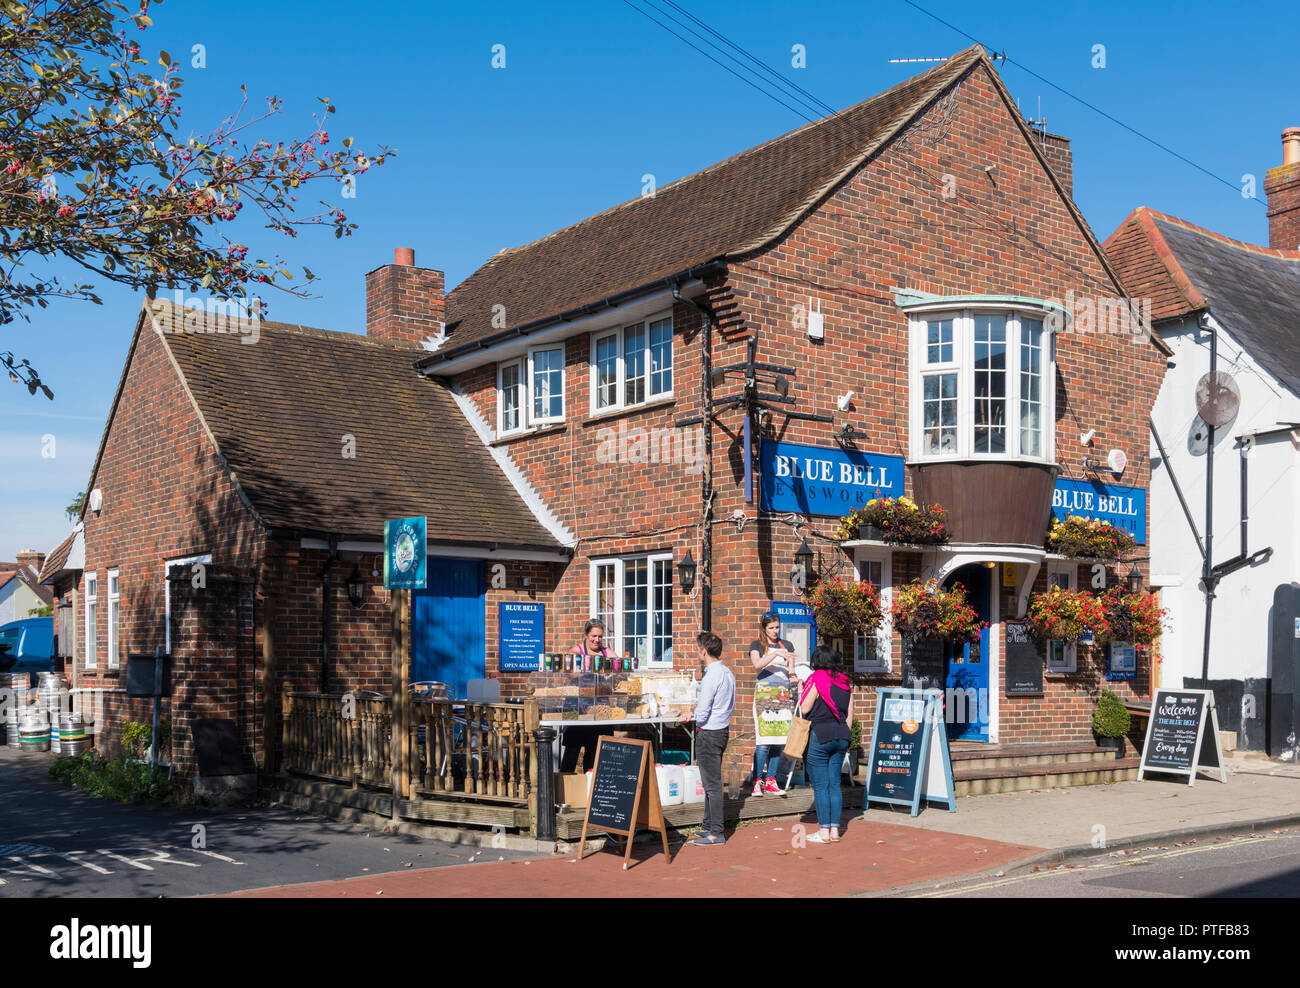 Blue Bell Inn, pub and restaurant in Emsworth, Hampshire, England, UK. - Stock Image